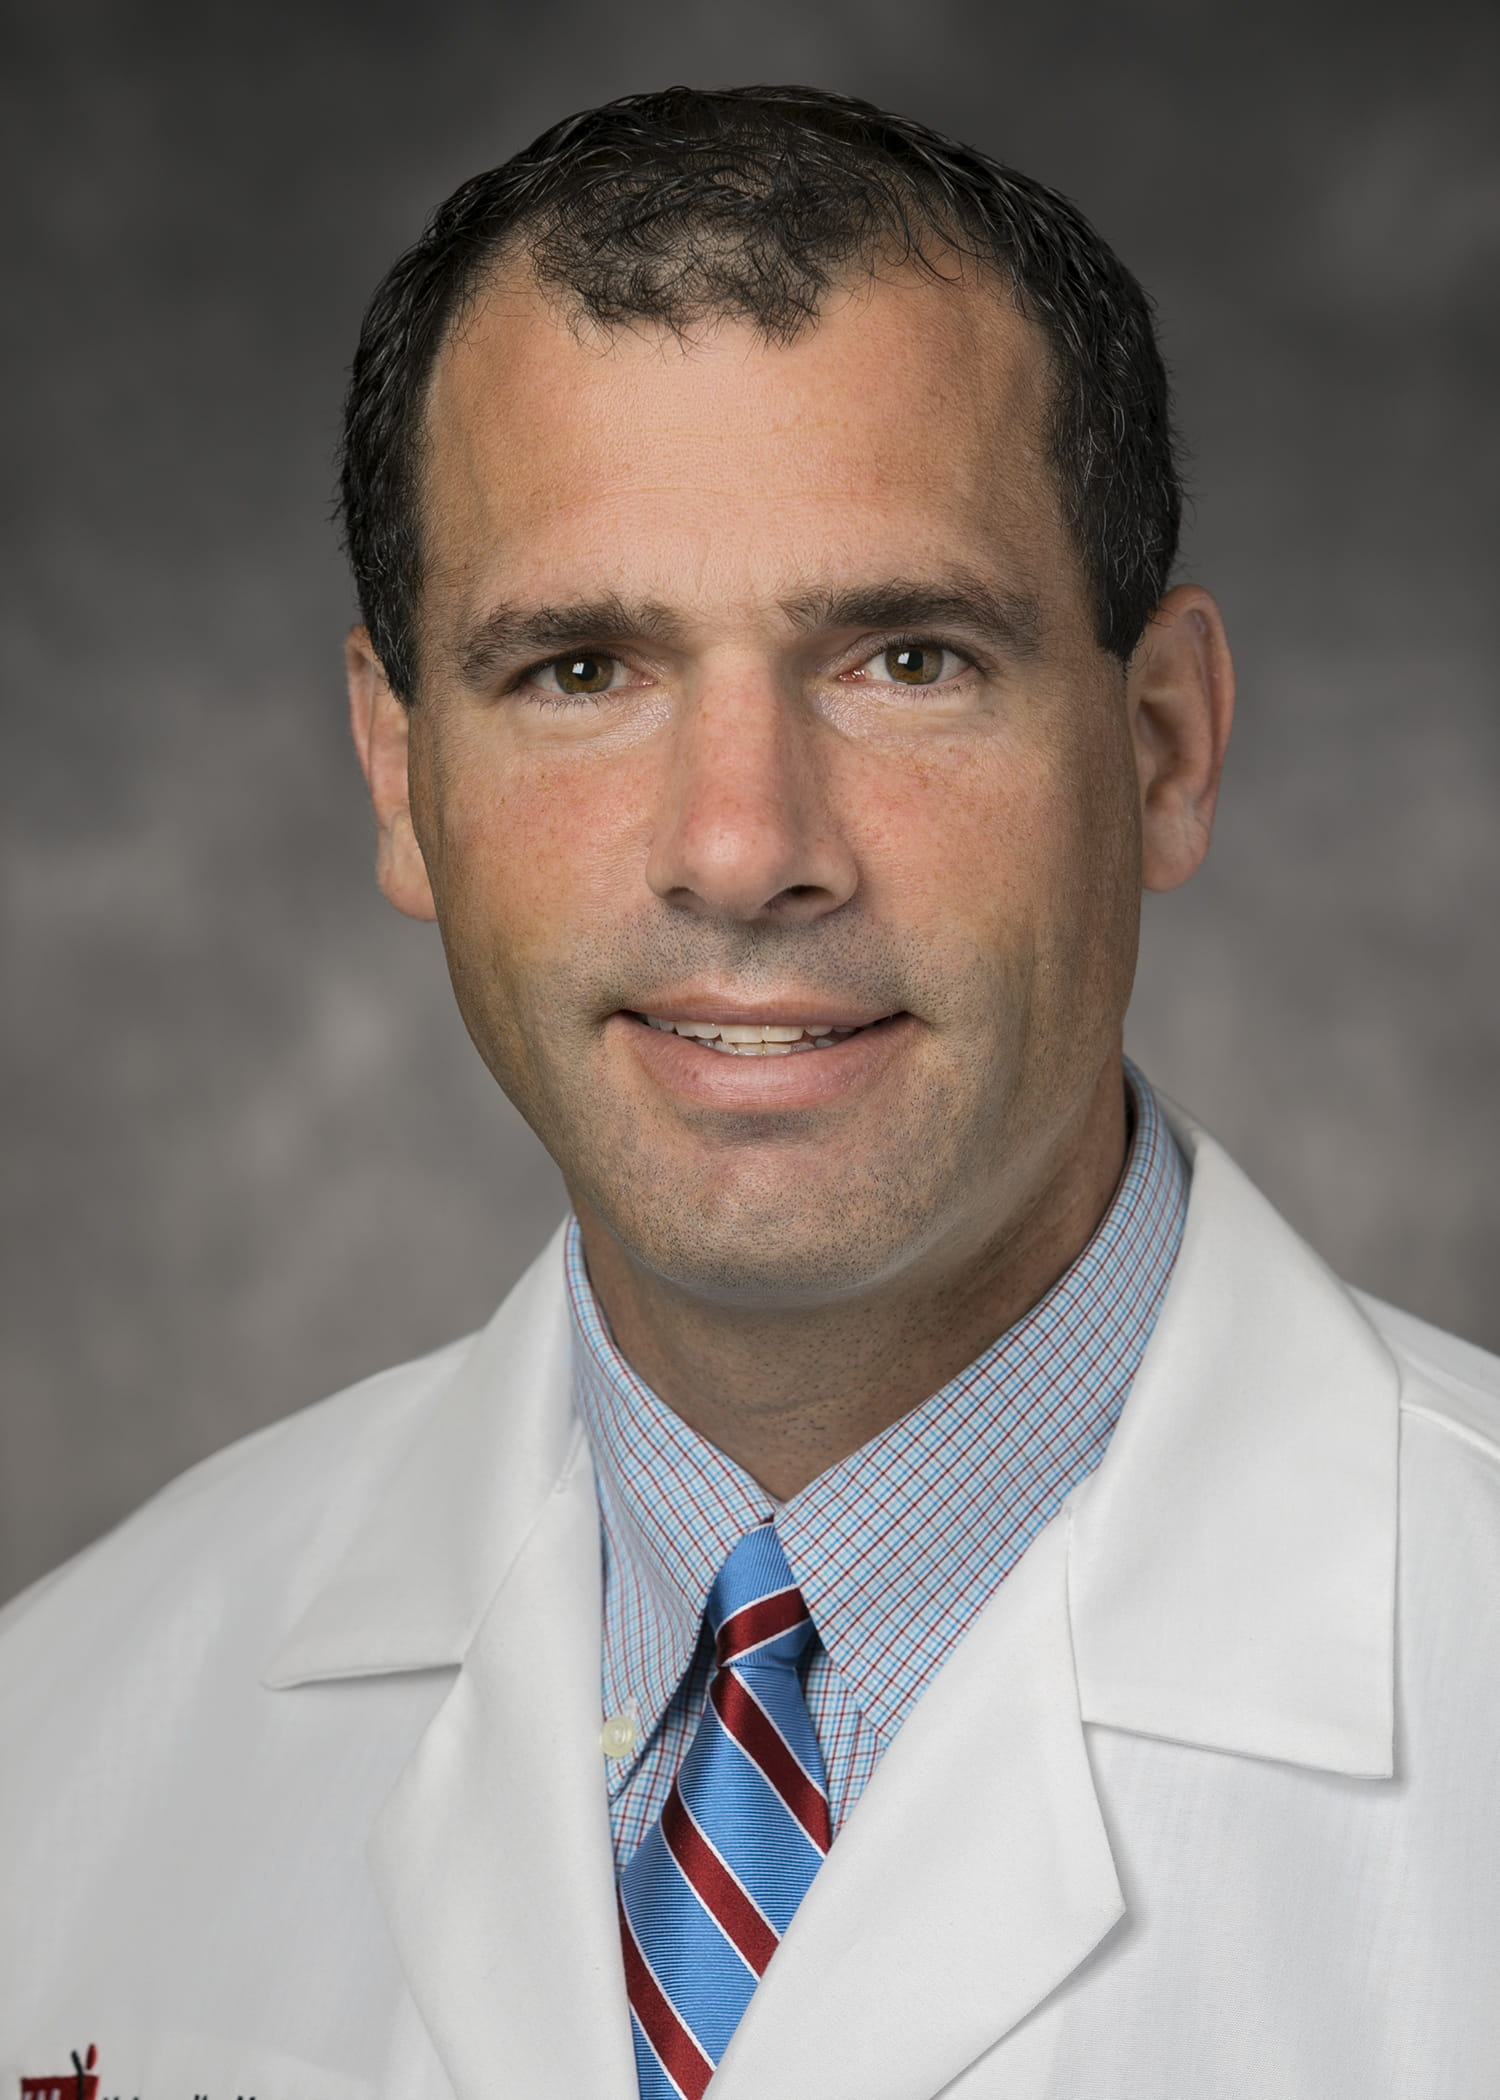 Jordan M. Winter MD